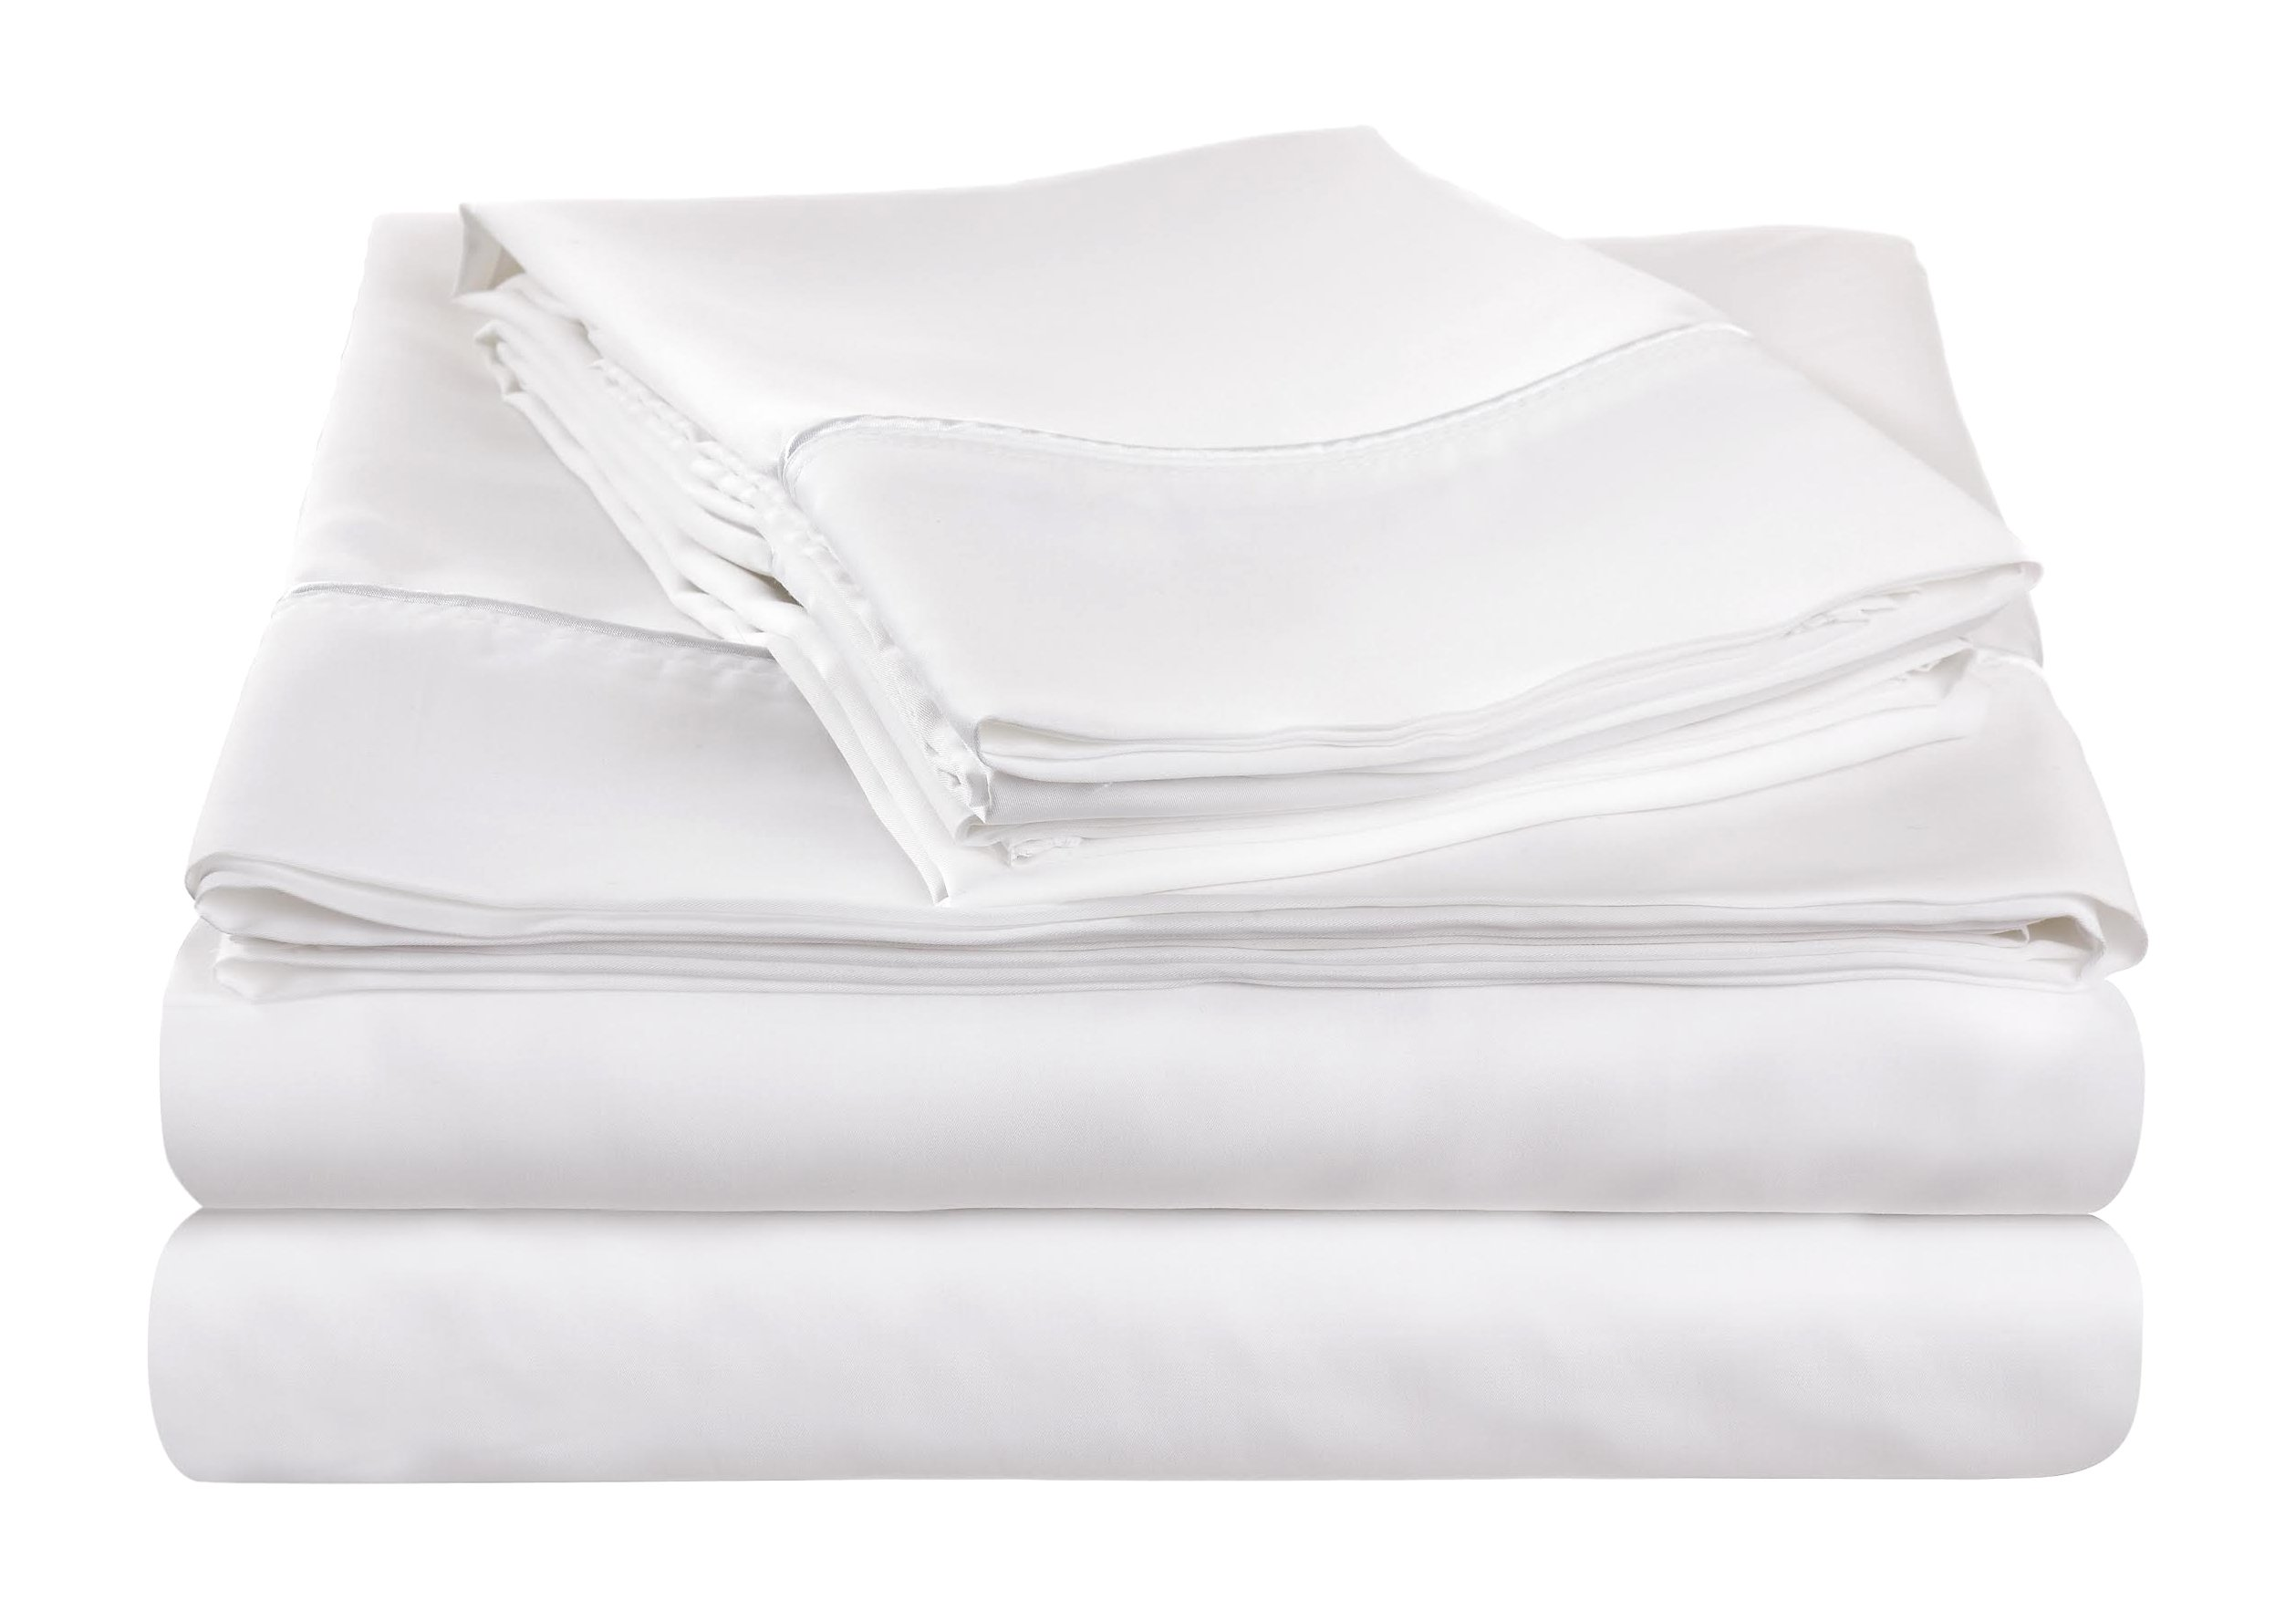 NuSleep Bedding Performance California Sheet Set with 37.5 Technology, King, White